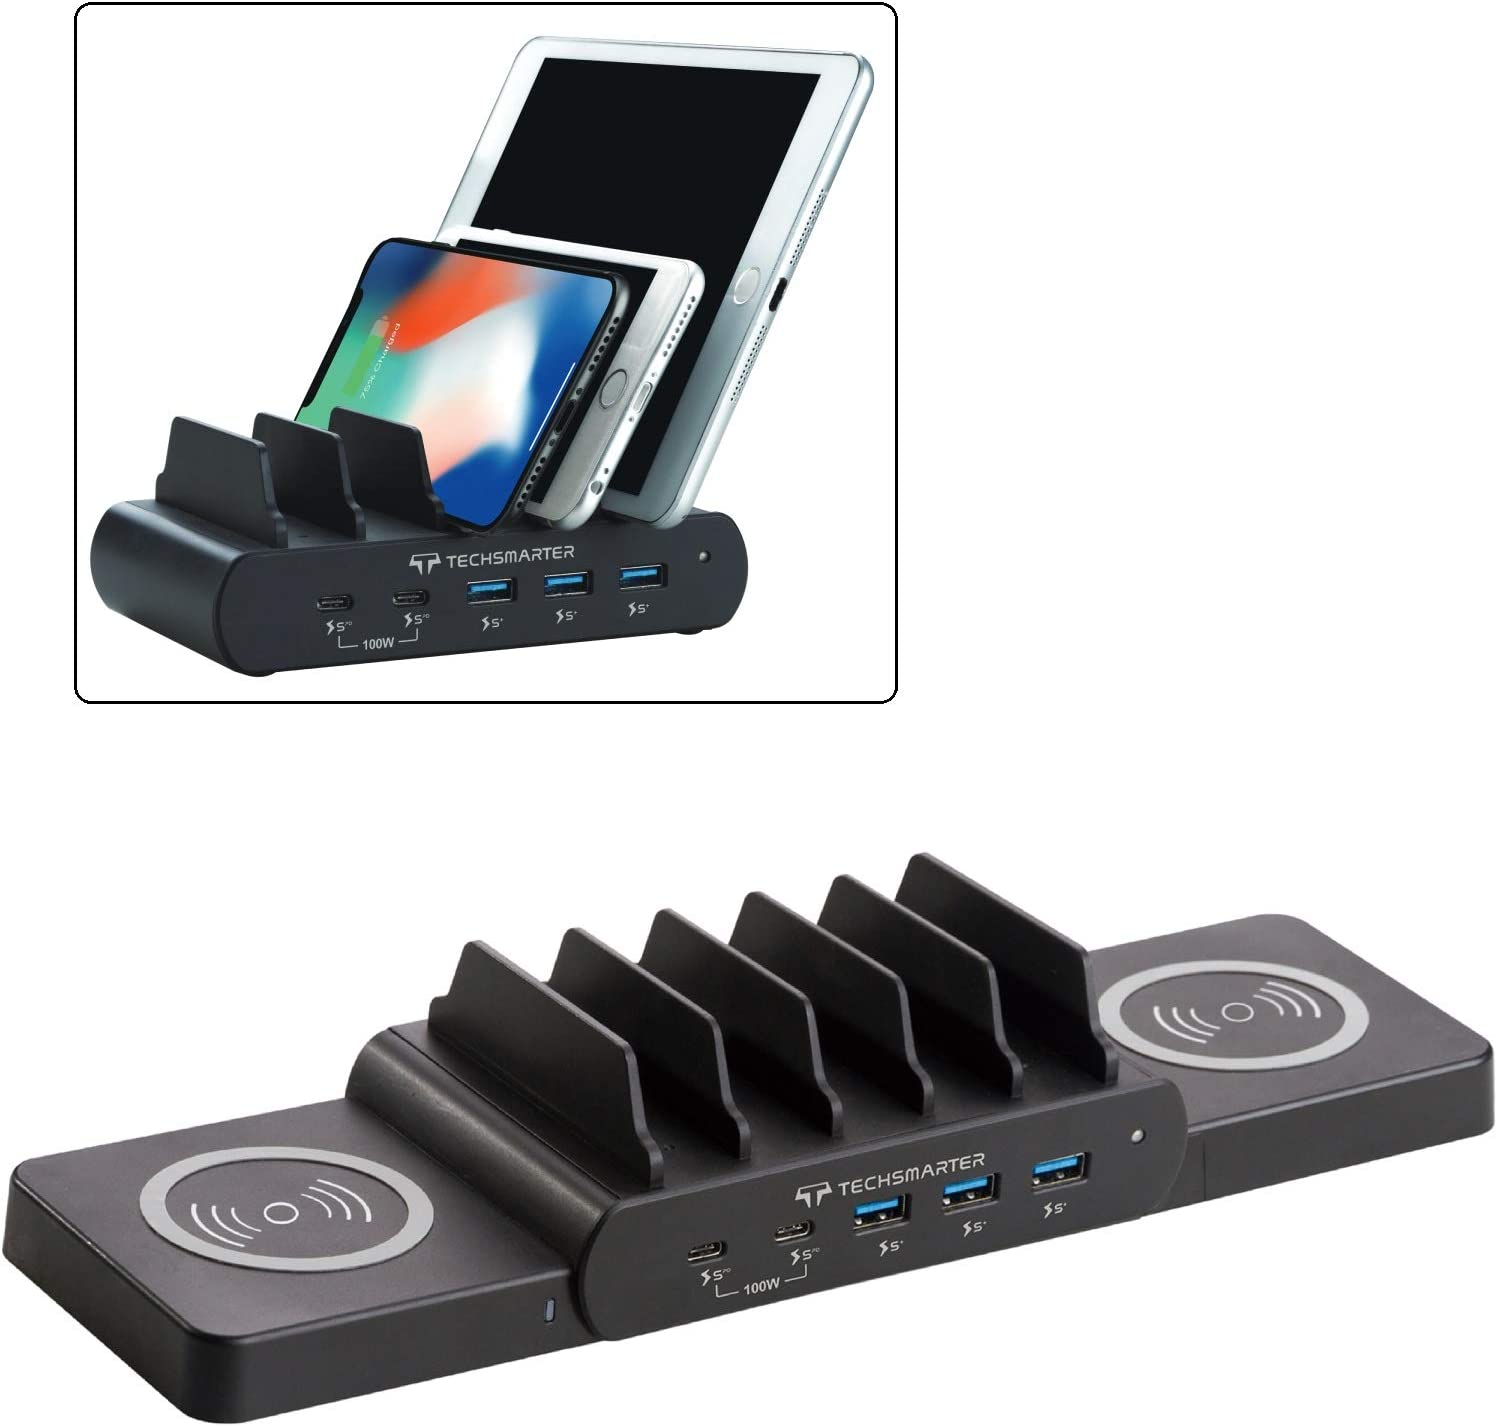 Techsmarter 7-Port Charging Station with 100W Dual USB-C PD, Dual 15W Wireless Charger, Three 18W Fast Charging USB Ports. Compatible with MacBook, iPad, iPhone, Samsung, Dell, HP, Lenovo